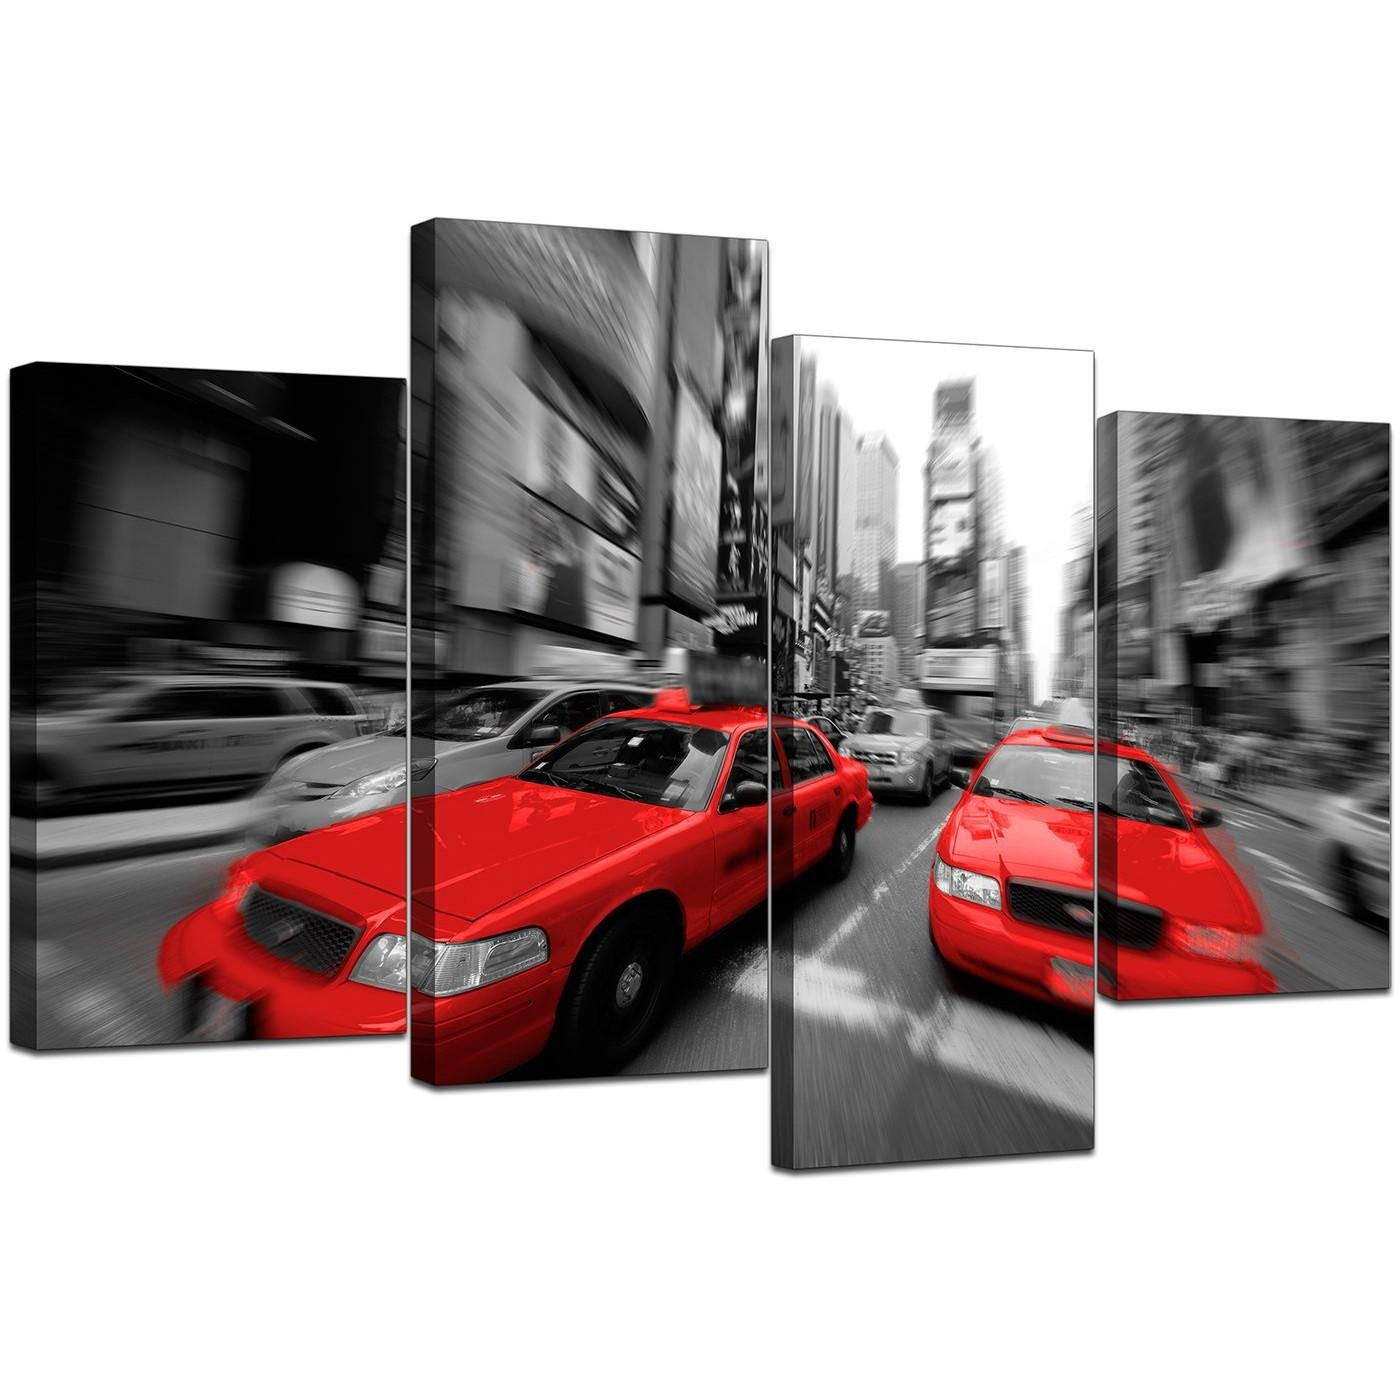 New York Canvas Prints In Black White & Red – For Living Room With Regard To Black And White Wall Art With Red (View 15 of 20)